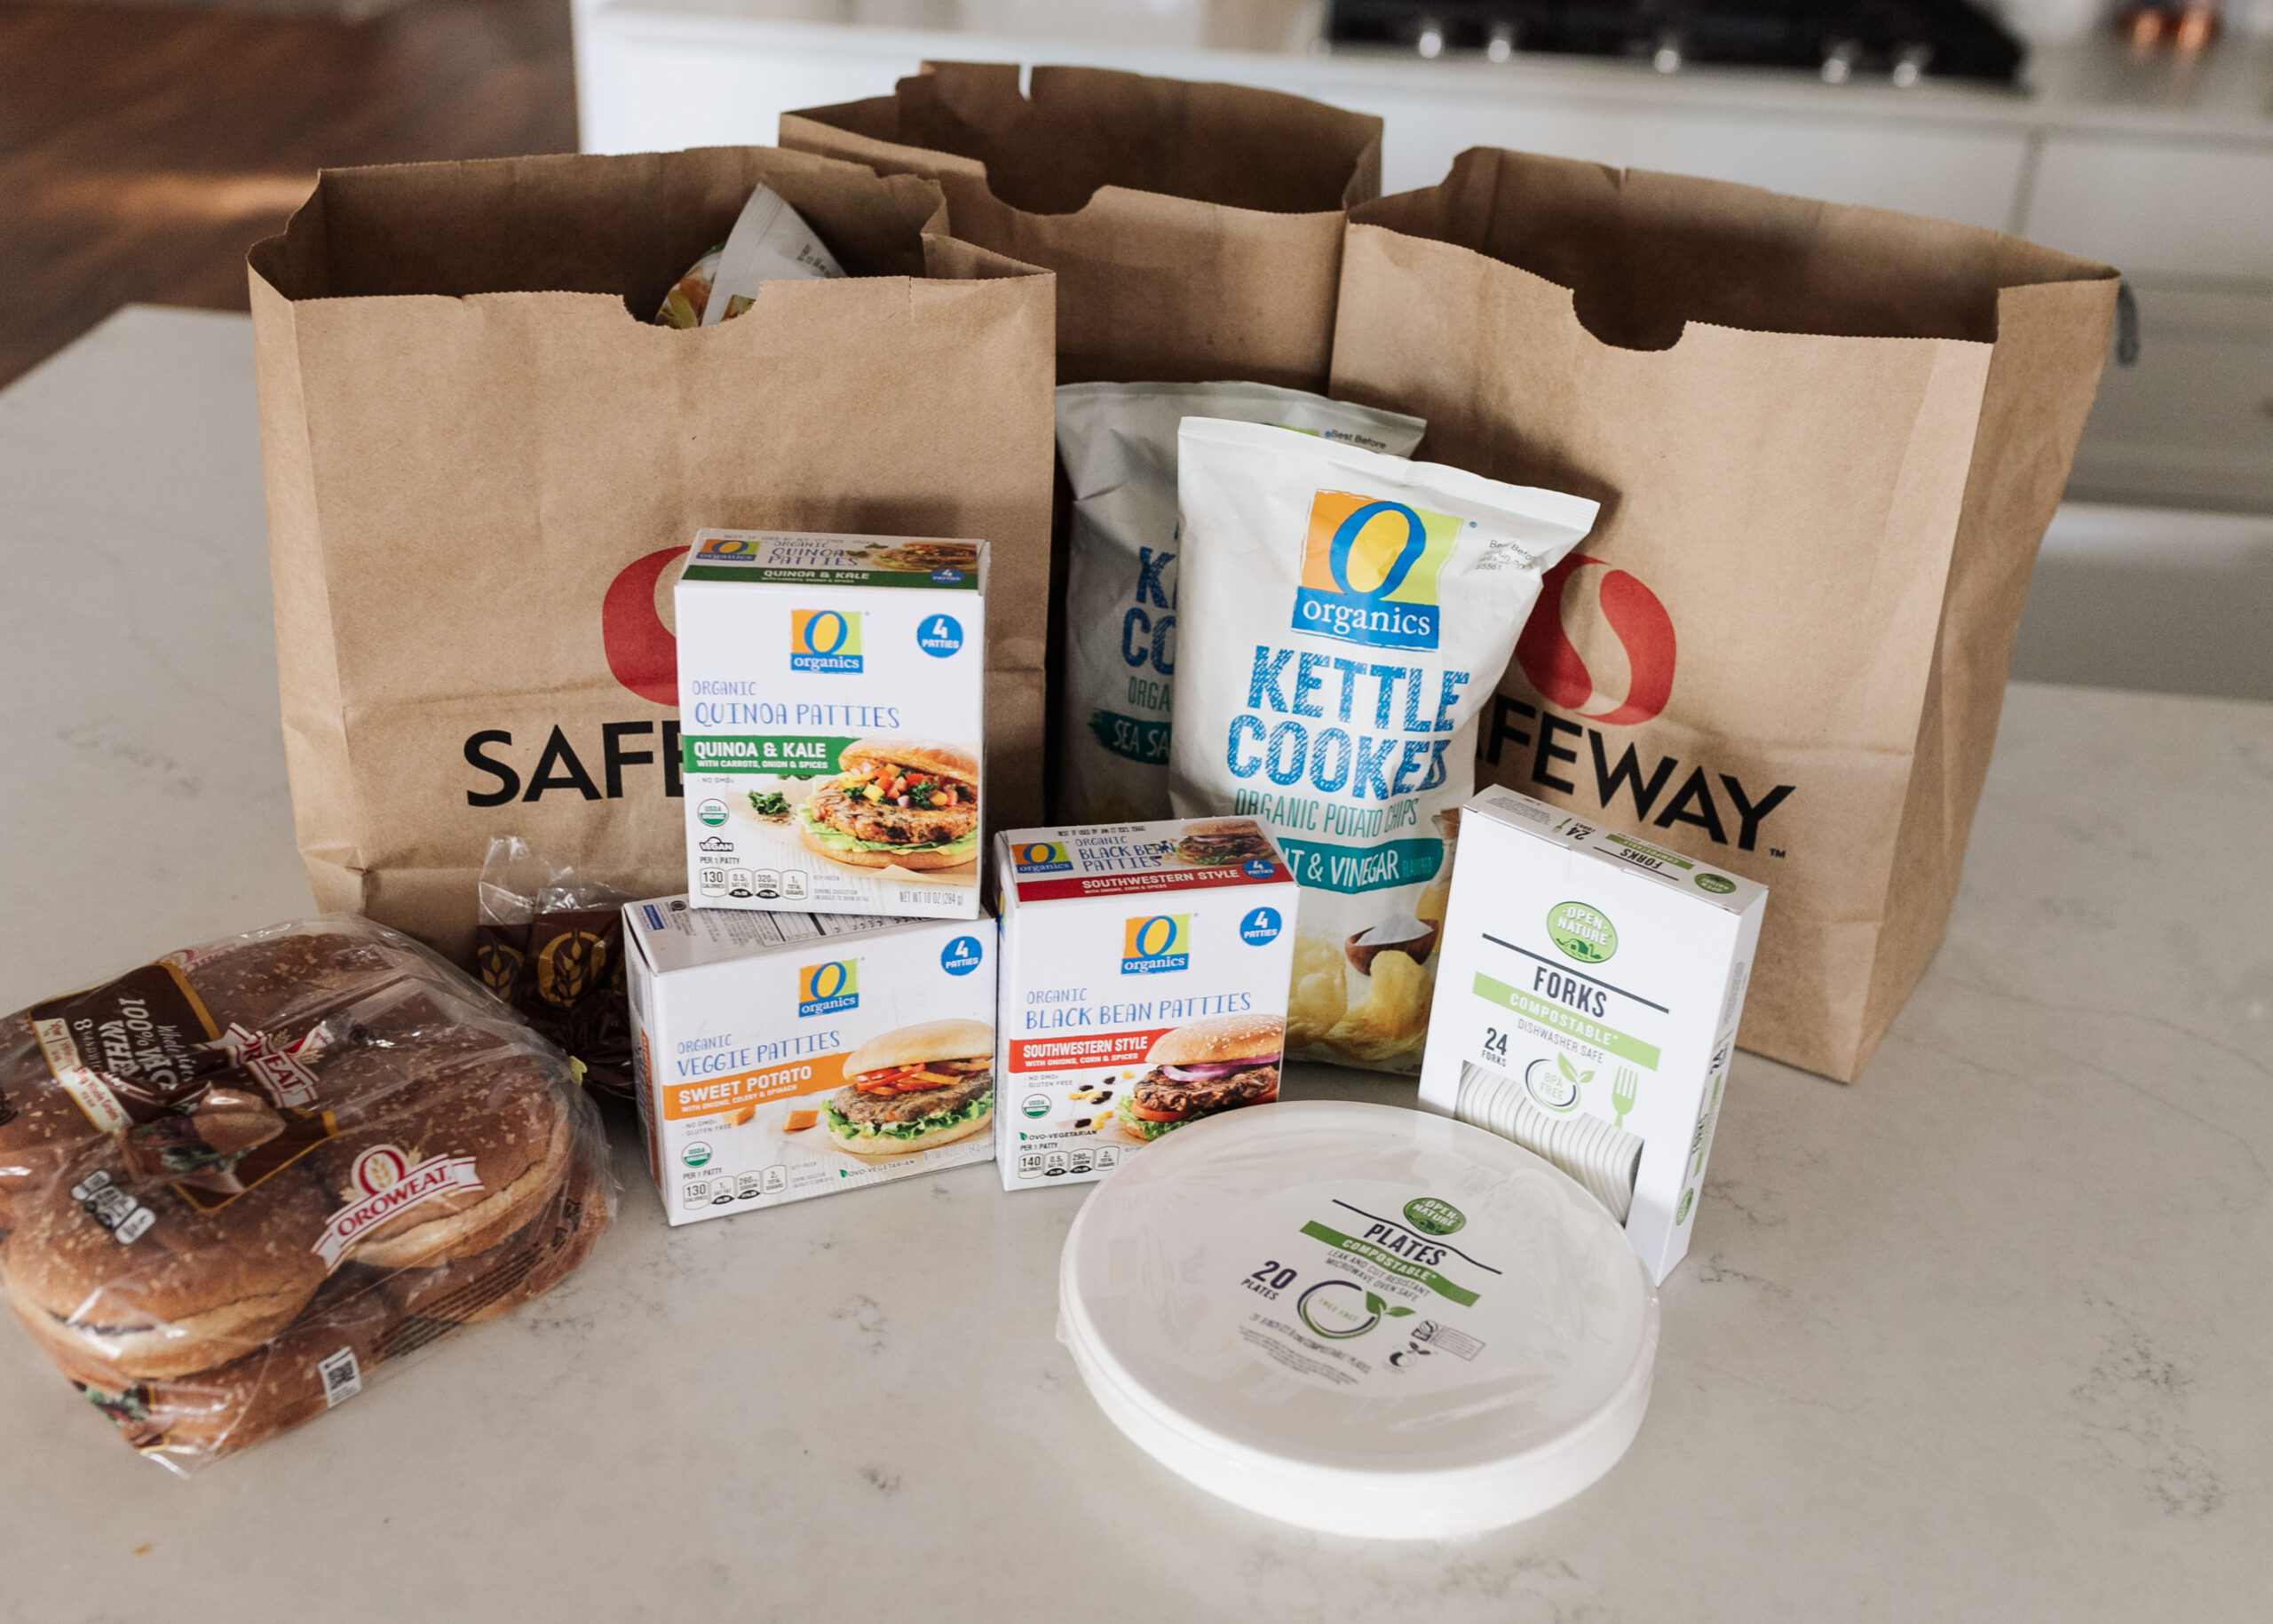 sharing our grocery haul from Safeway to make an easy plant based family dinner. #groveryhaul #safeway #plantbaseddinnerideas